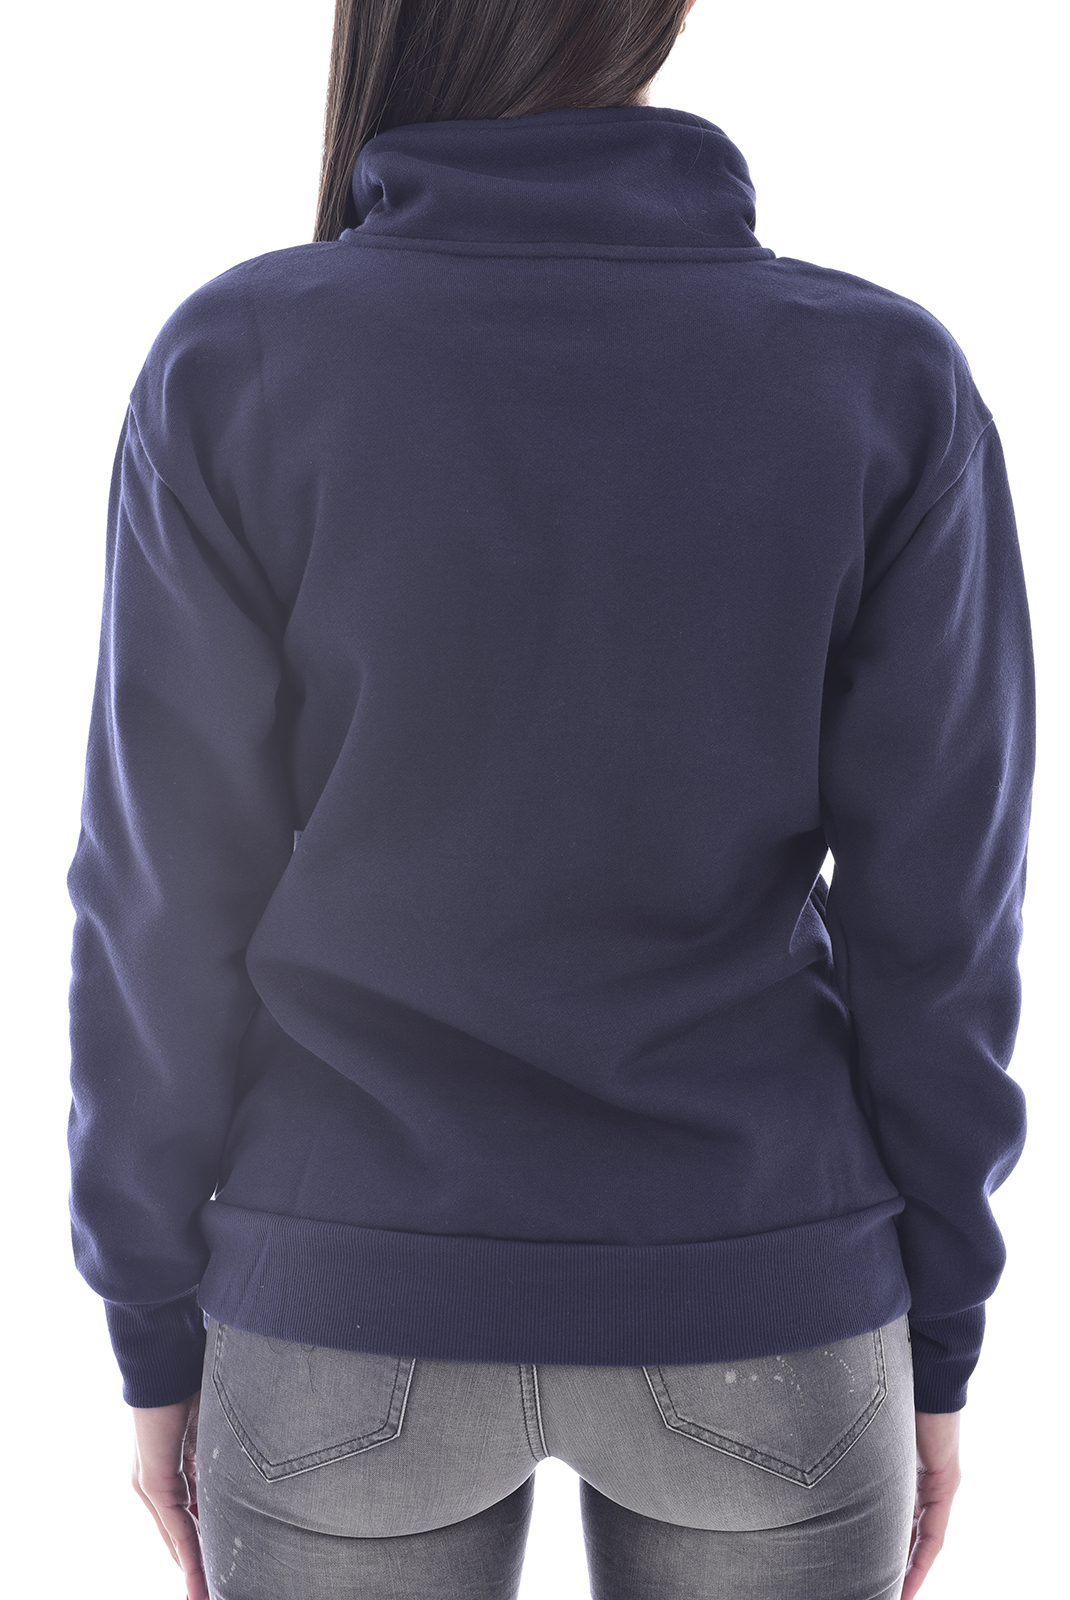 Sweat / sweat zippé  Emporio armani 164385 0A250 637 BLUE